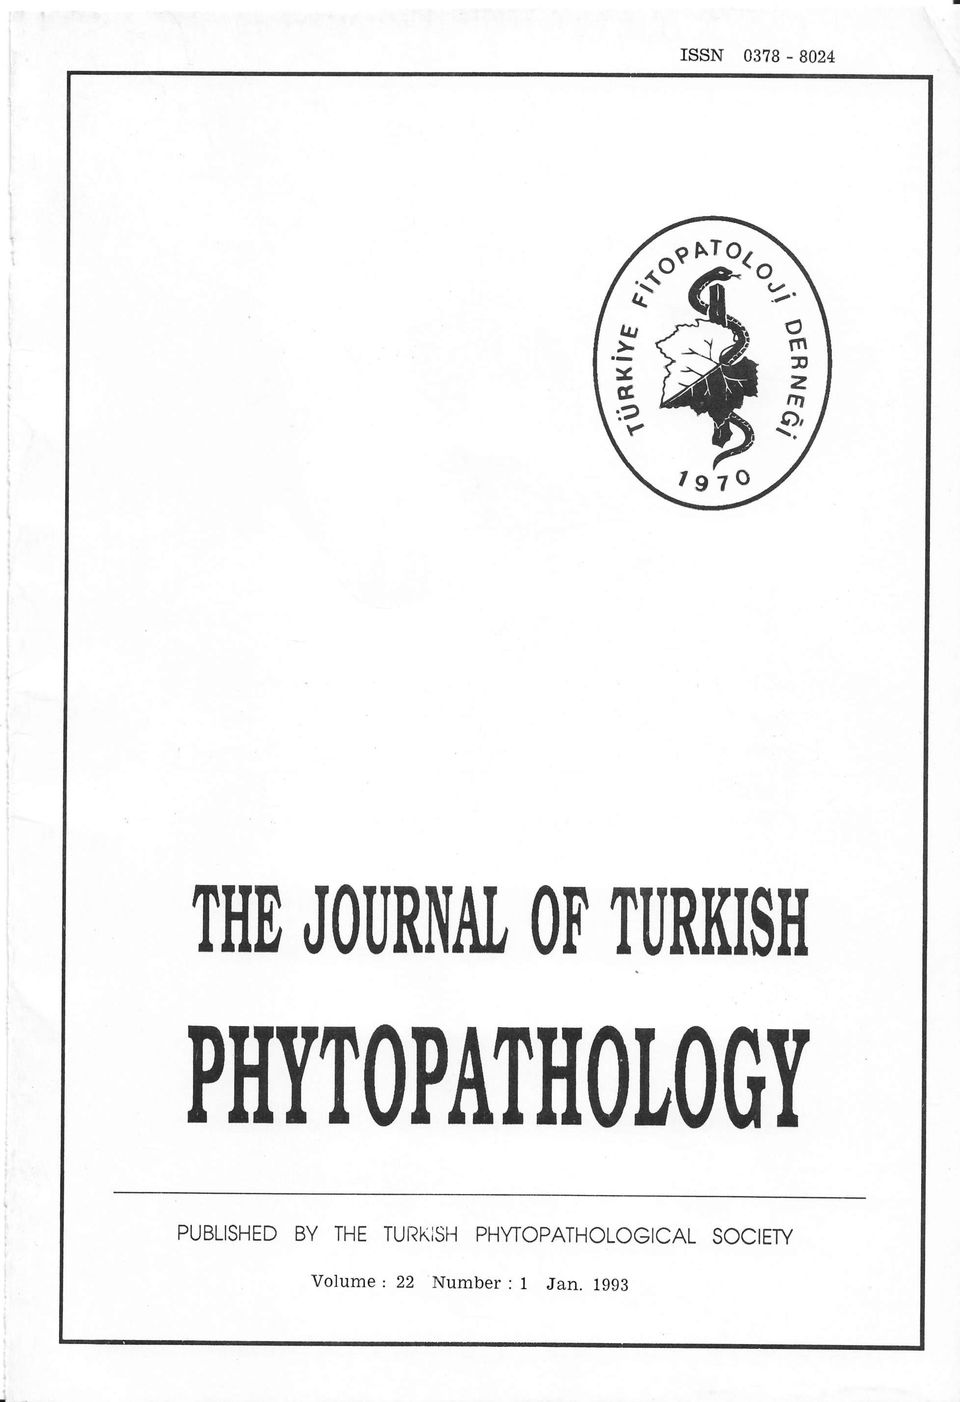 PHYTOPATIIOLOOY PUBLISHED BY THE